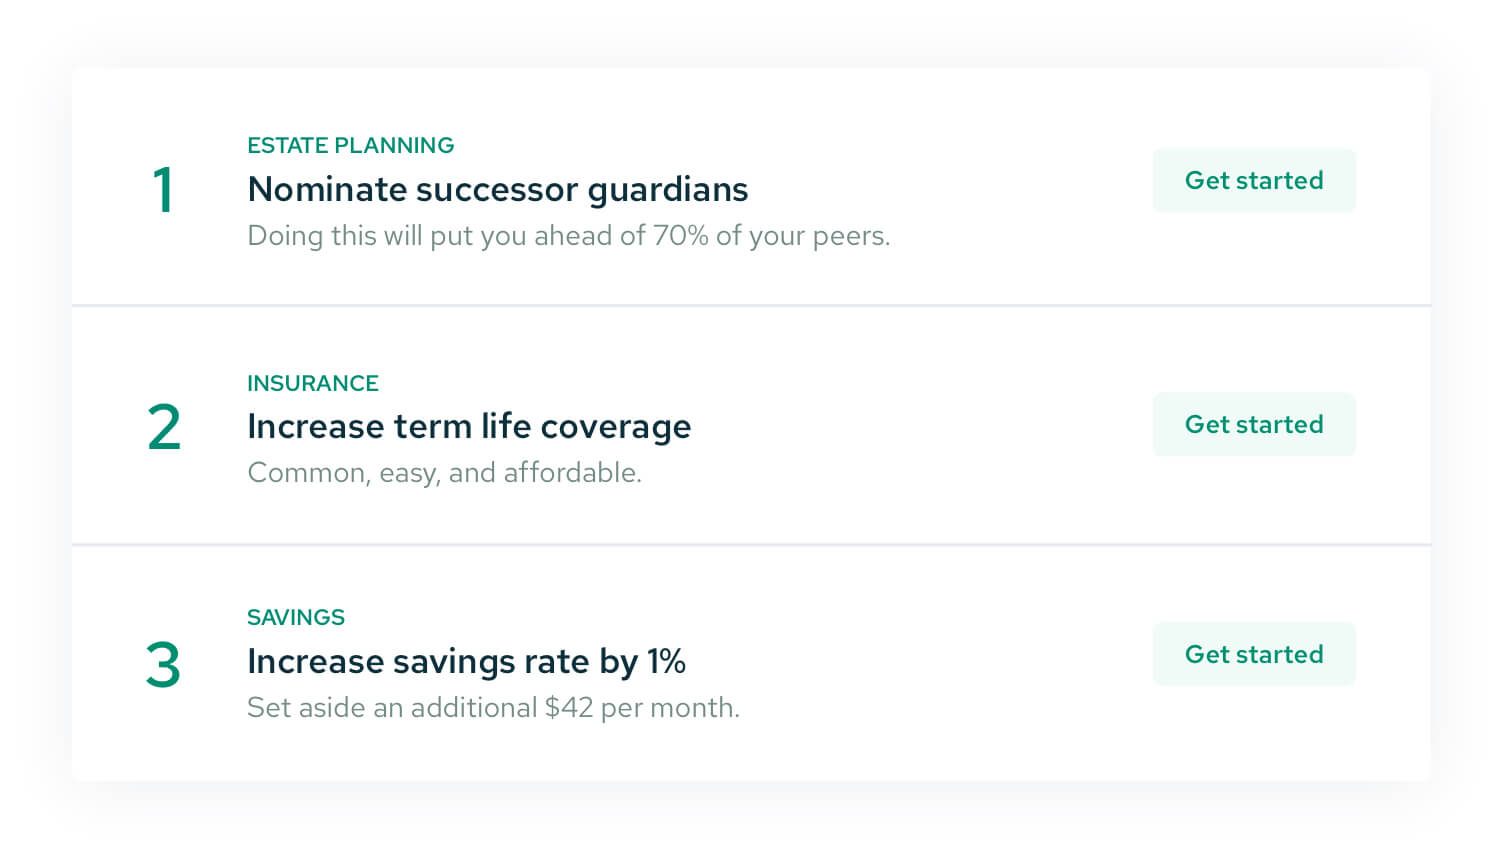 A sample screenshot of the Action Items page within a free financial plan, showing that this example user could nominate successor guardians, increase term life coverage, and increase savings rate.